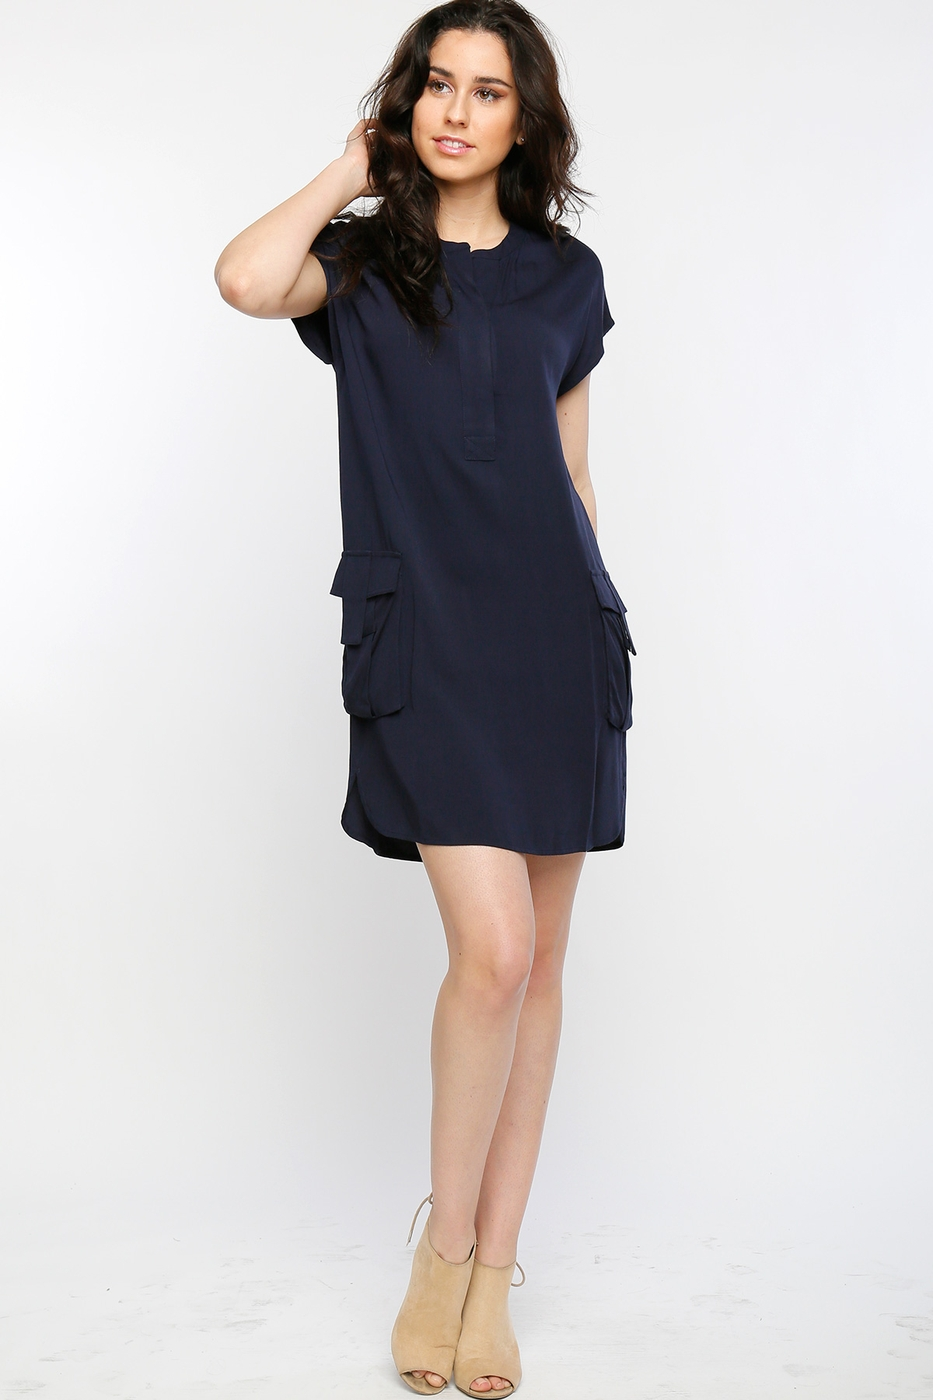 Cap sleeve dress - orangeshine.com